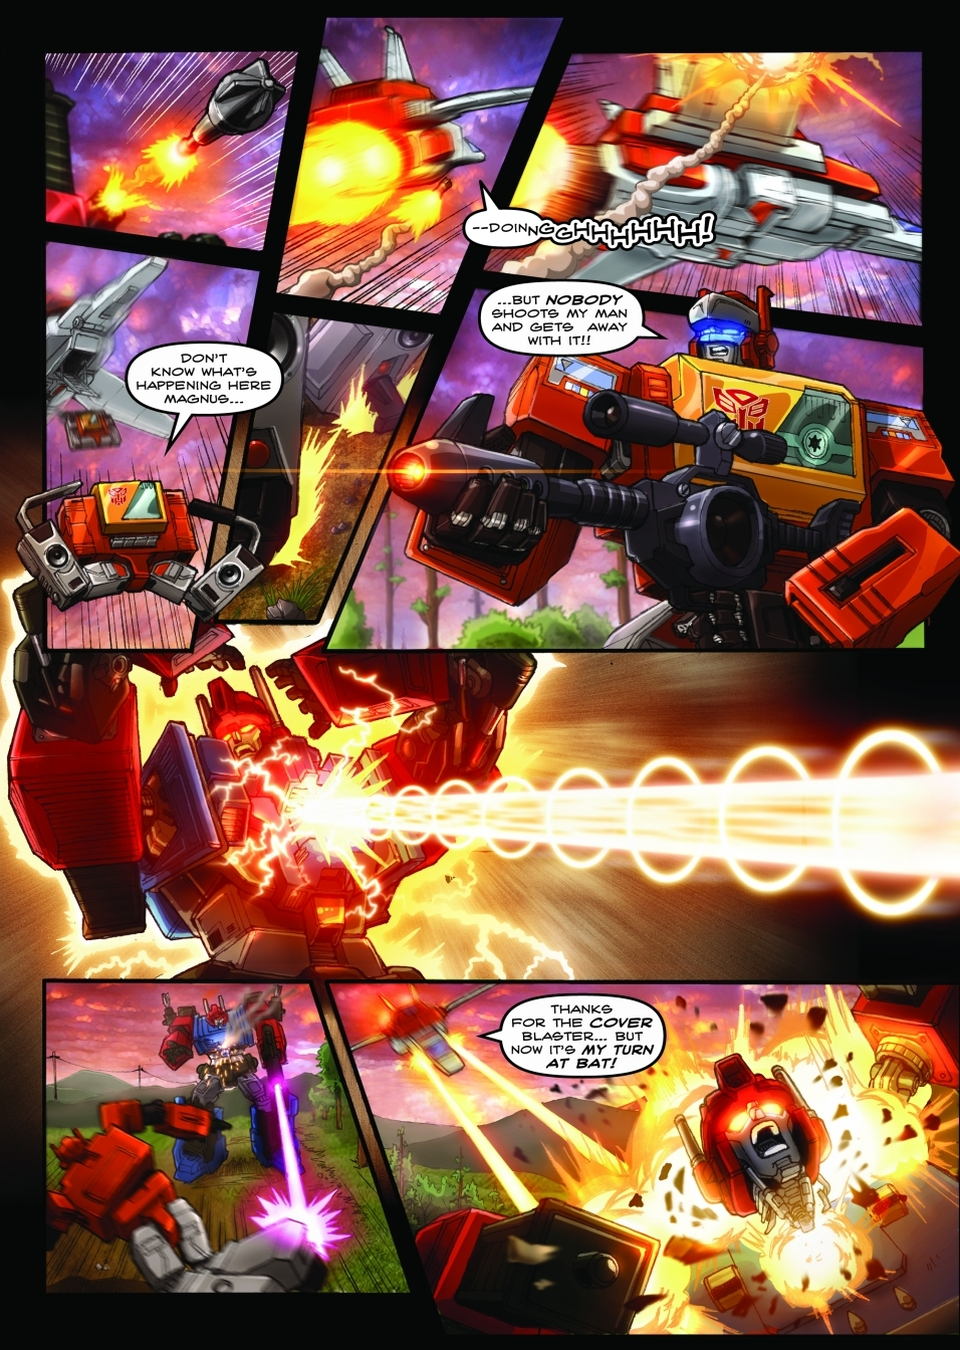 Attack of the DIAclones page 04